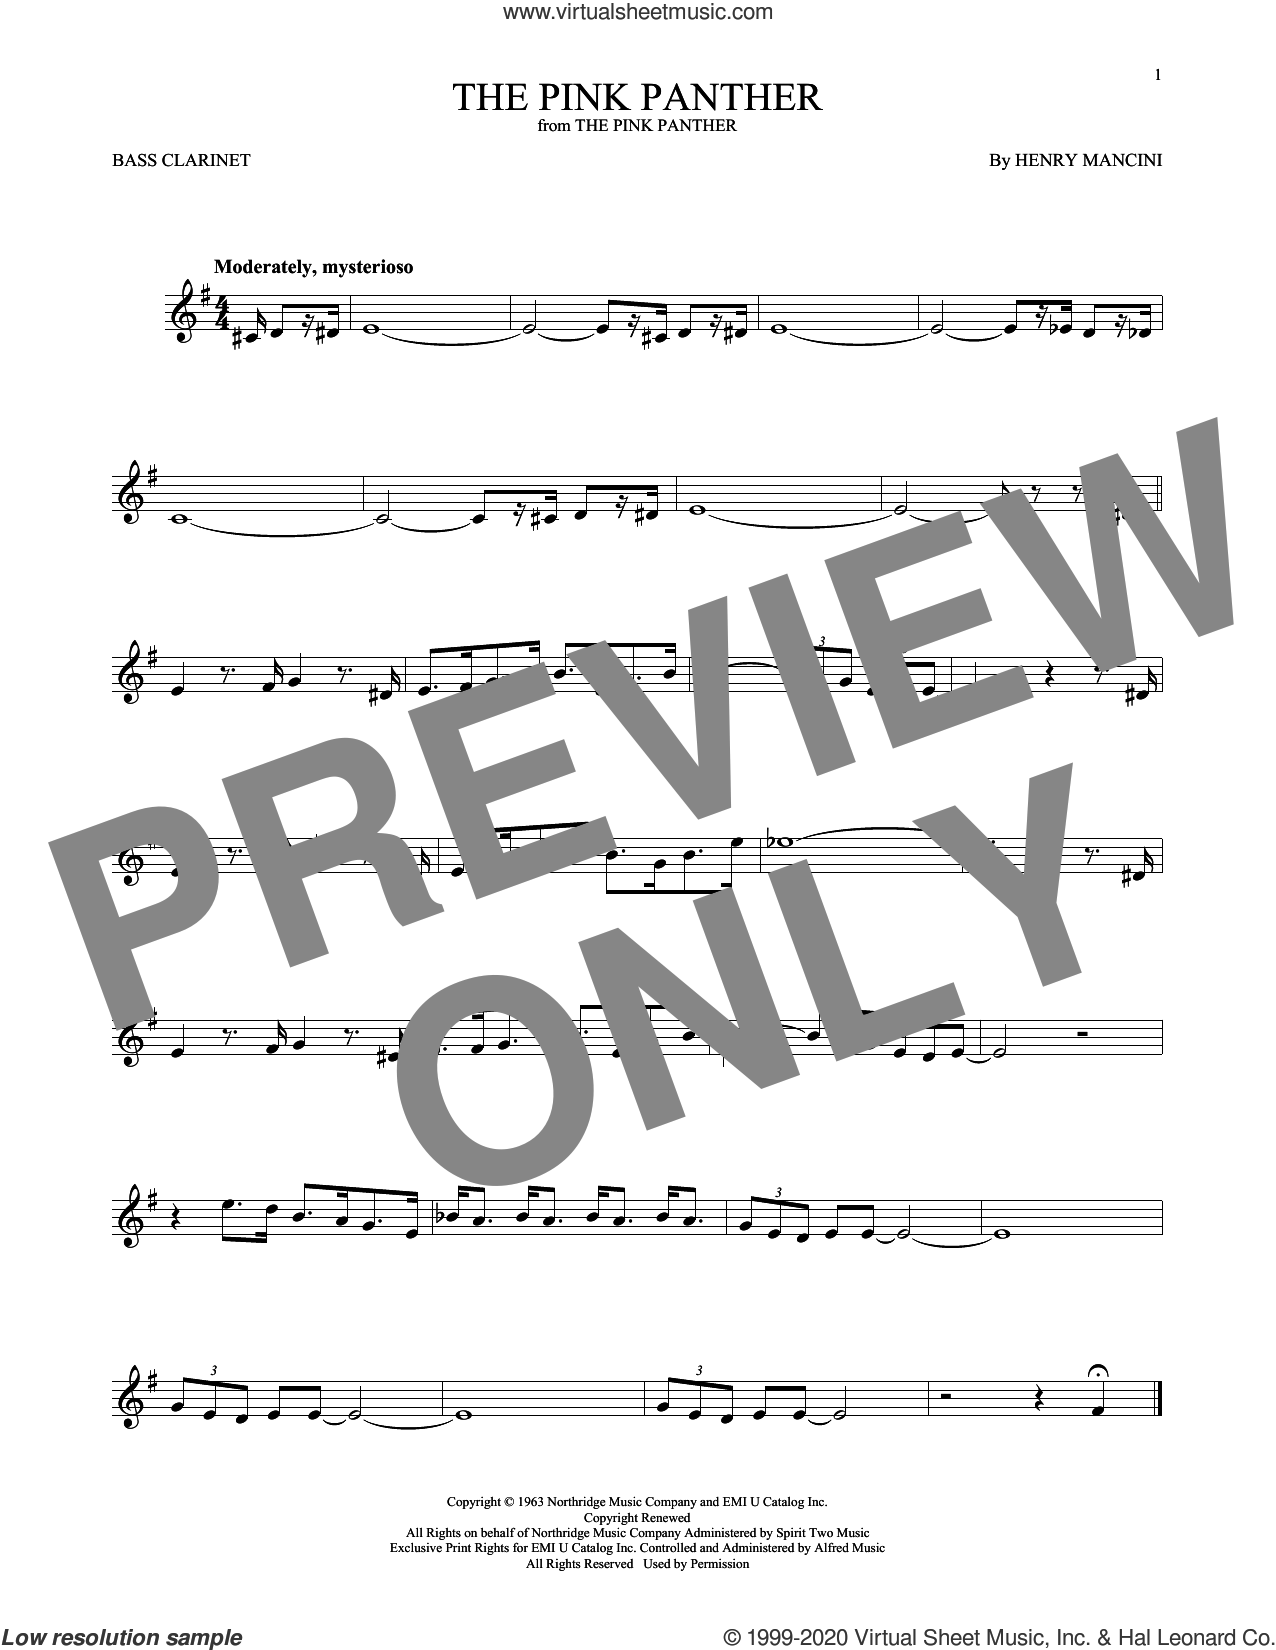 The Pink Panther sheet music for Bass Clarinet Solo (clarinetto basso) by Henry Mancini, intermediate skill level